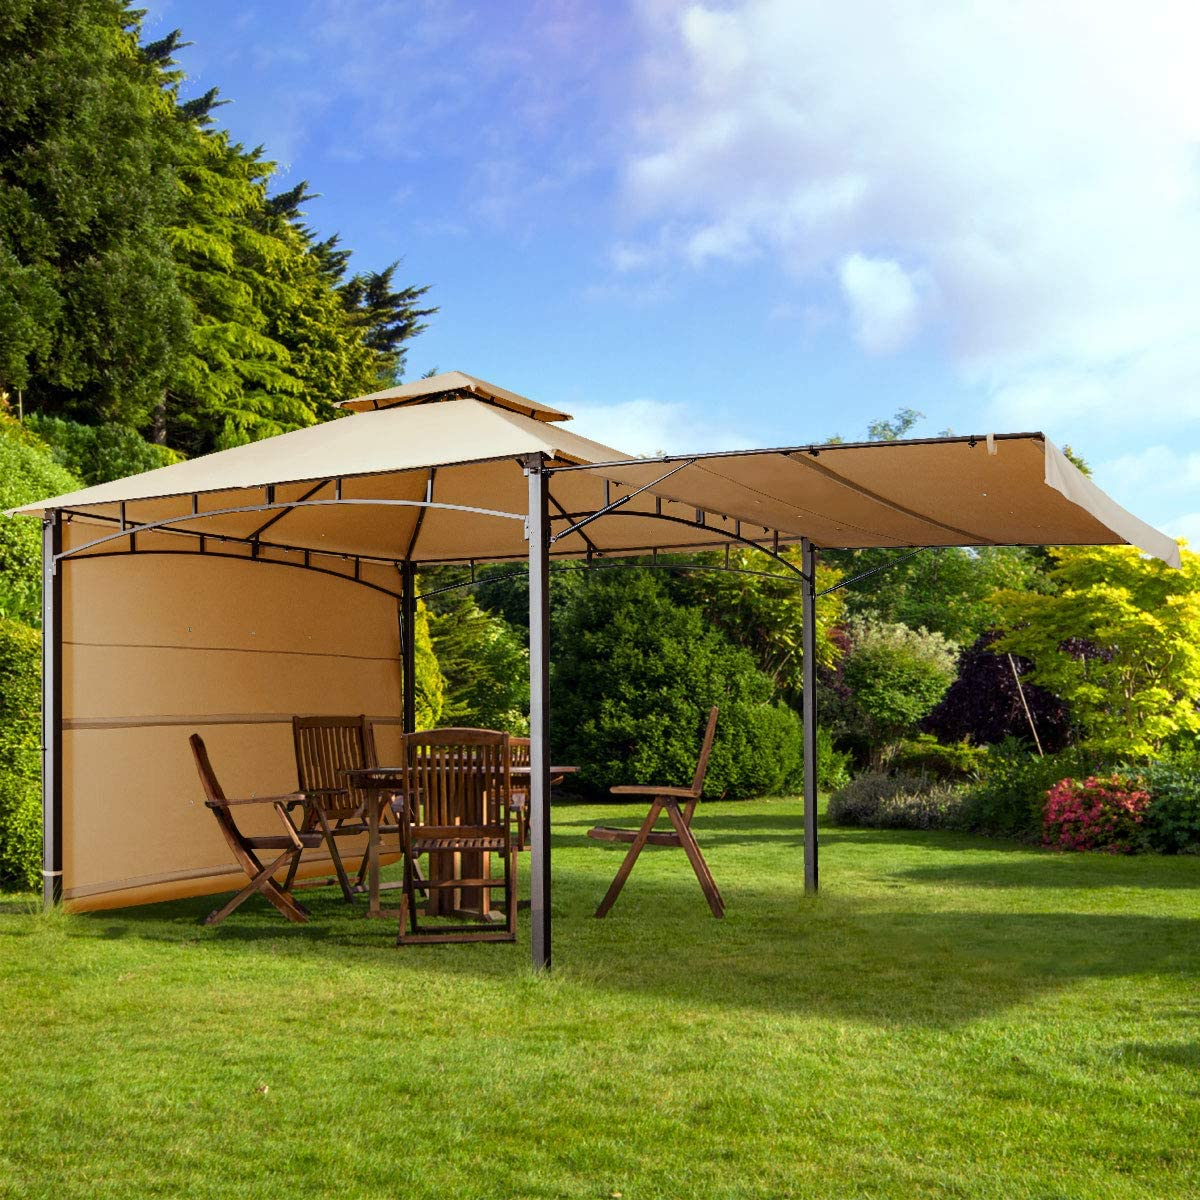 KITADIN 11 x11 Gazebo Tent Outdoor Canopy Shelter with Iron Frame, Removable Side Curtains and Vented Top Canopy for Garden Patio Beige